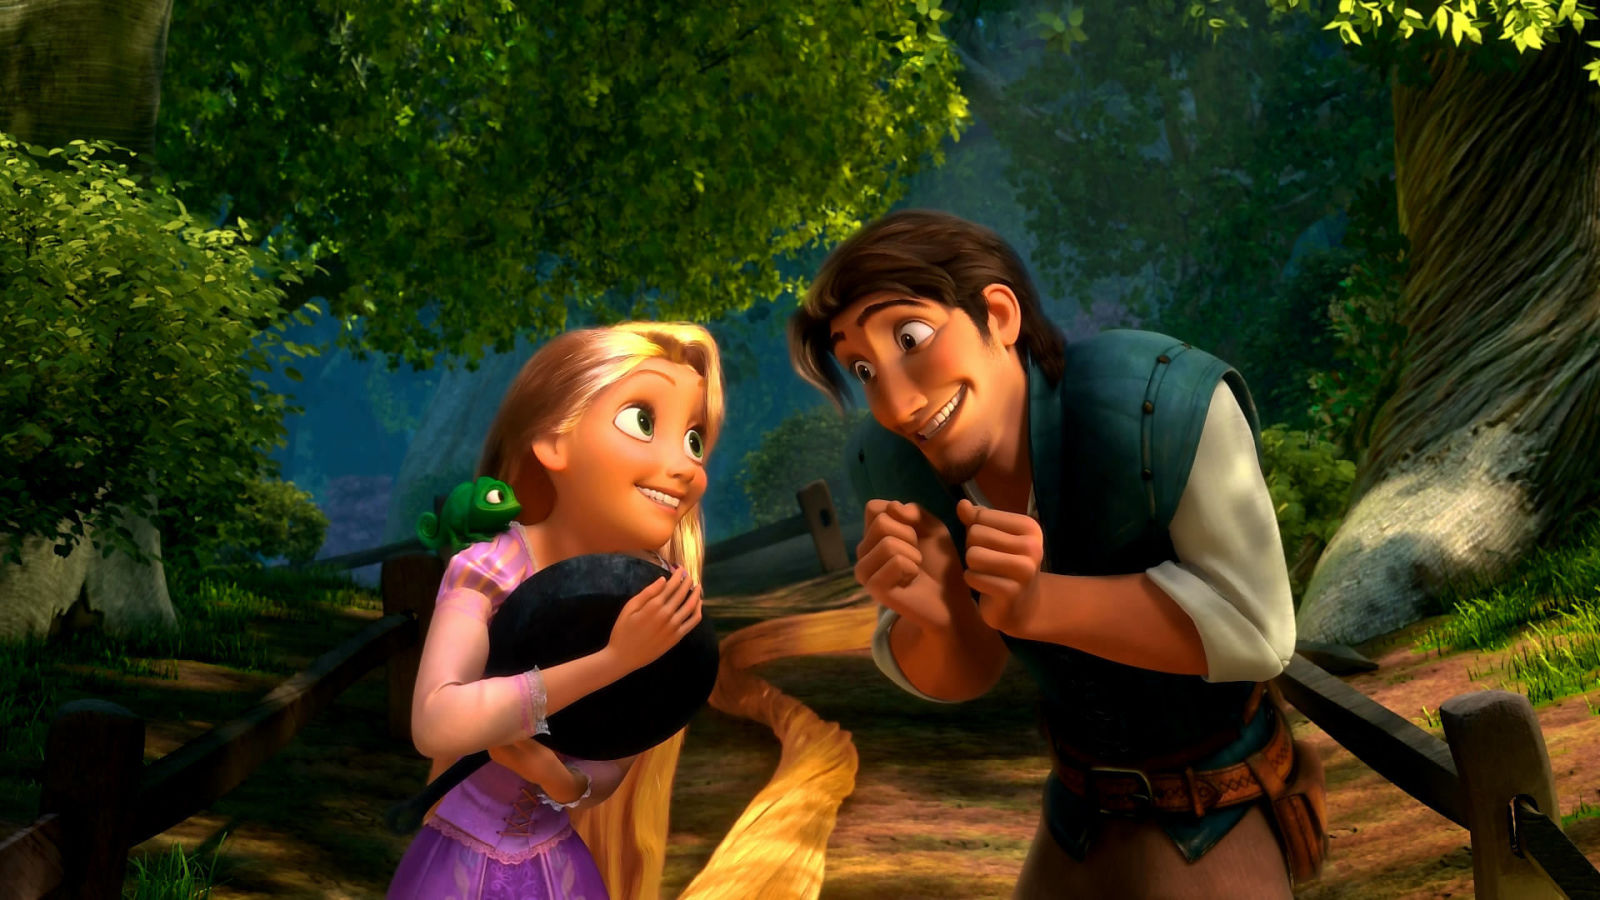 Tangled Wallpapers Movie Hq Tangled Pictures 4k Wallpapers 2019